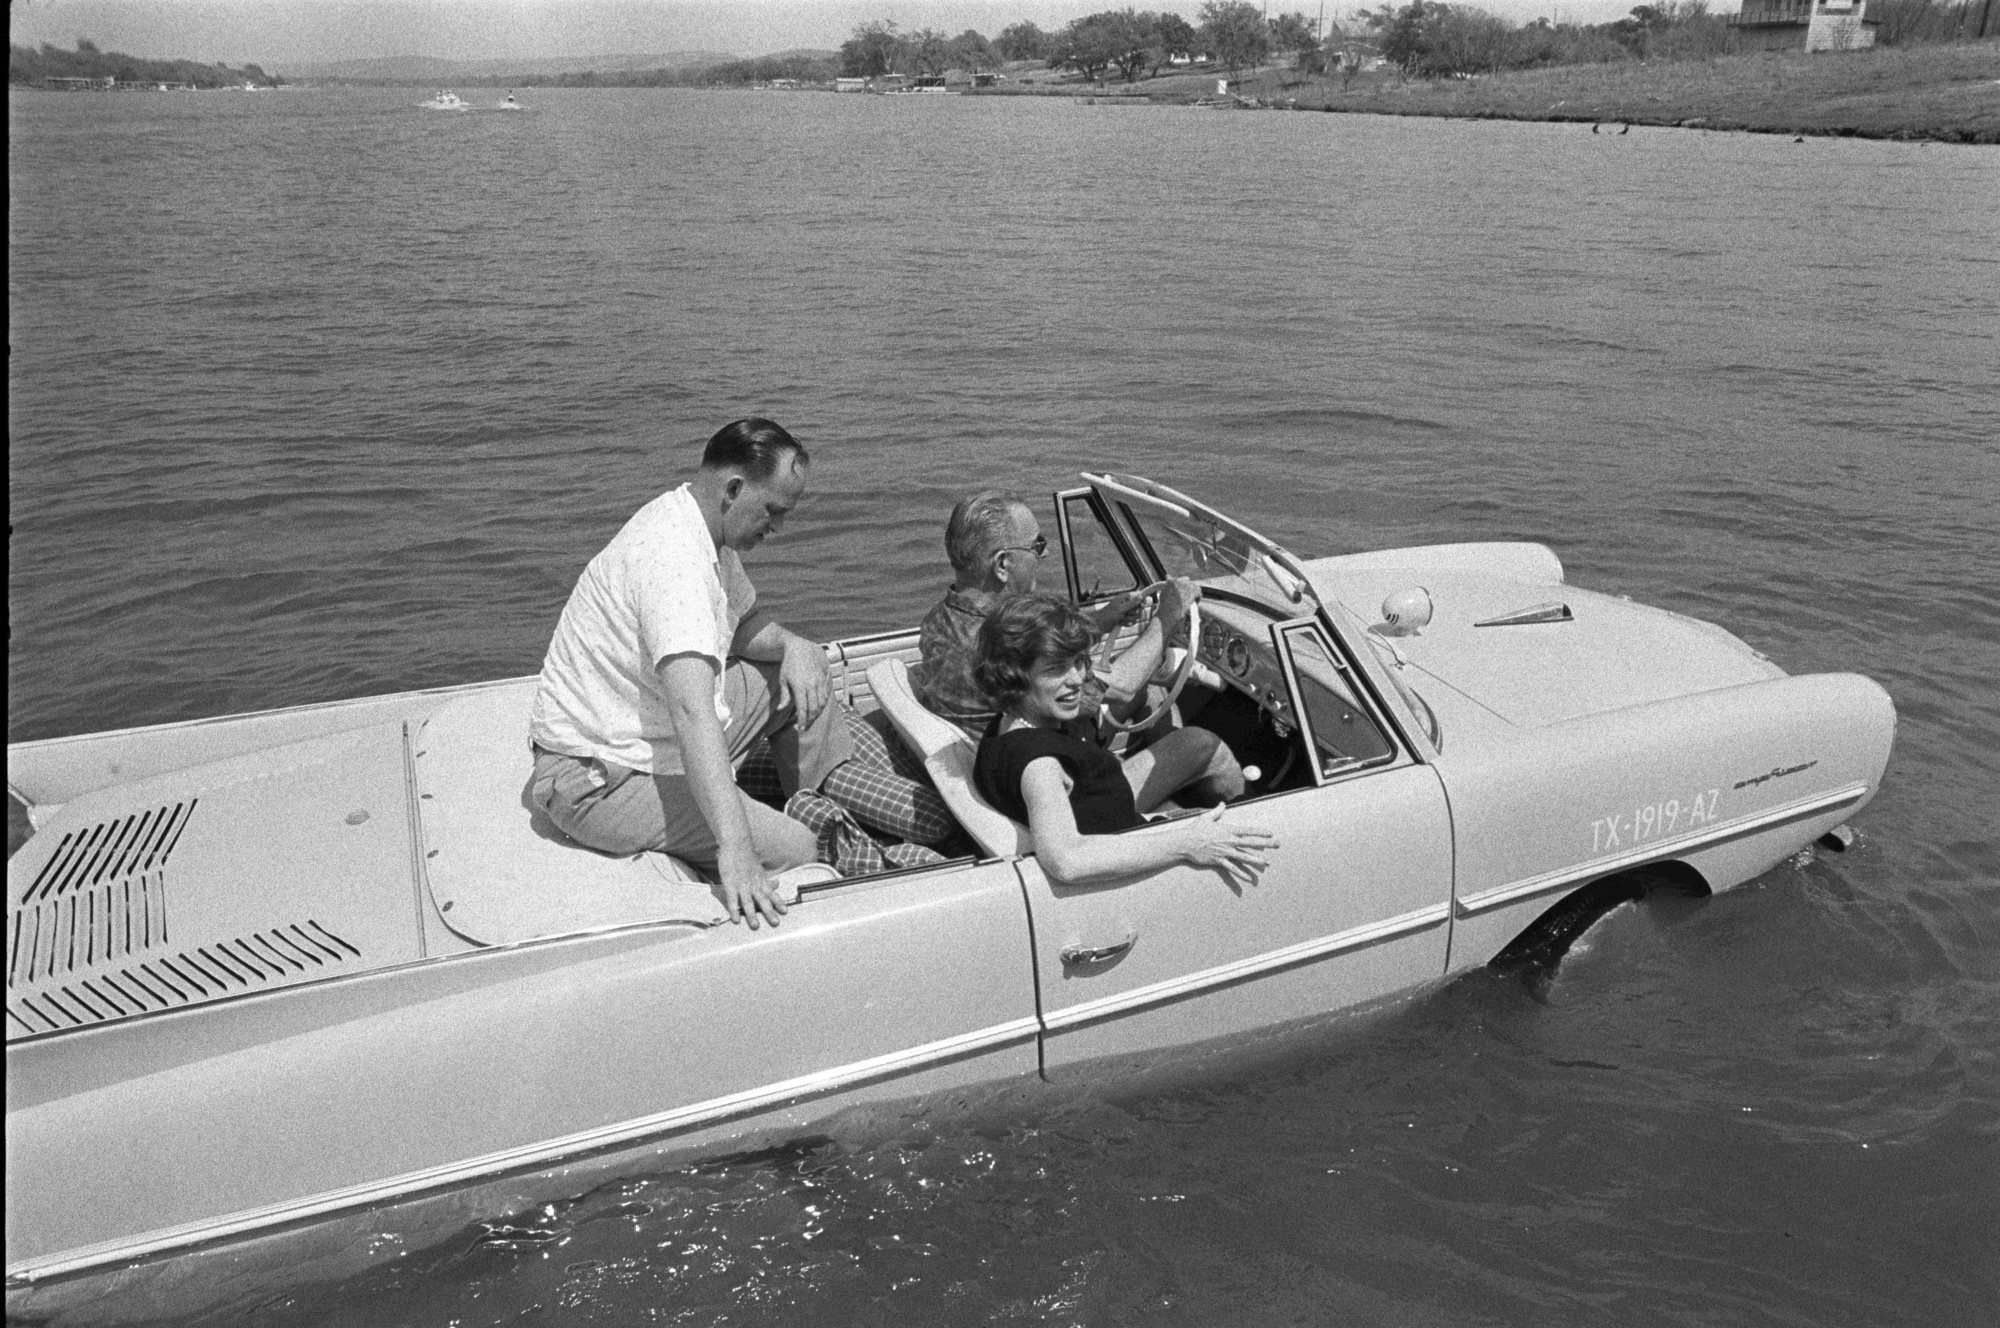 President Lyndon B. Johnson driving an Amphicar